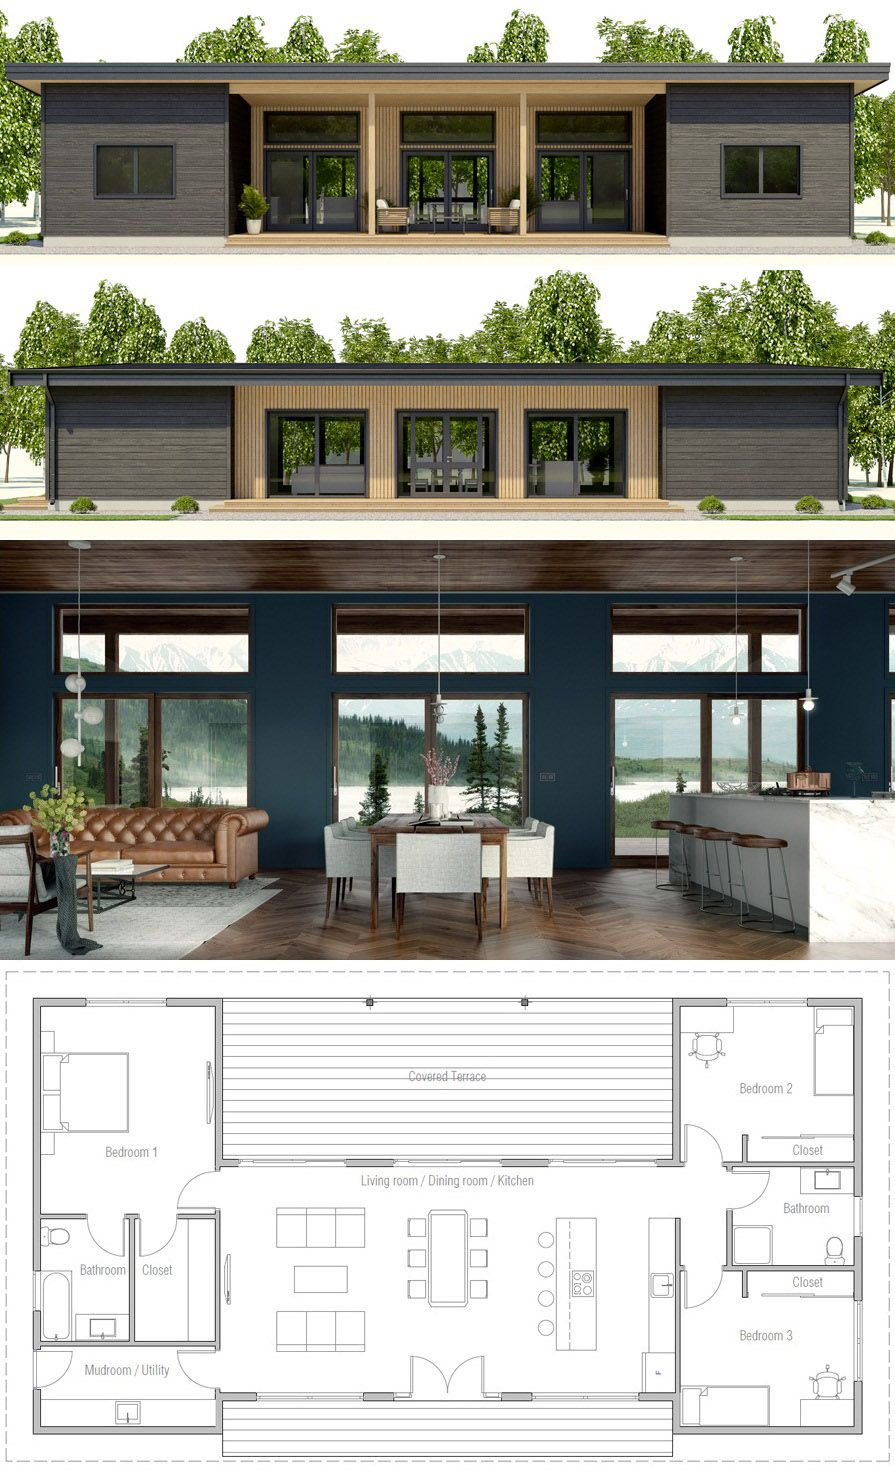 Small House Plan Small Home Designs Smallhouseplans Smallhomeplans Newhomeplans Adhouseplans House Plans Container House Plans New House Plans